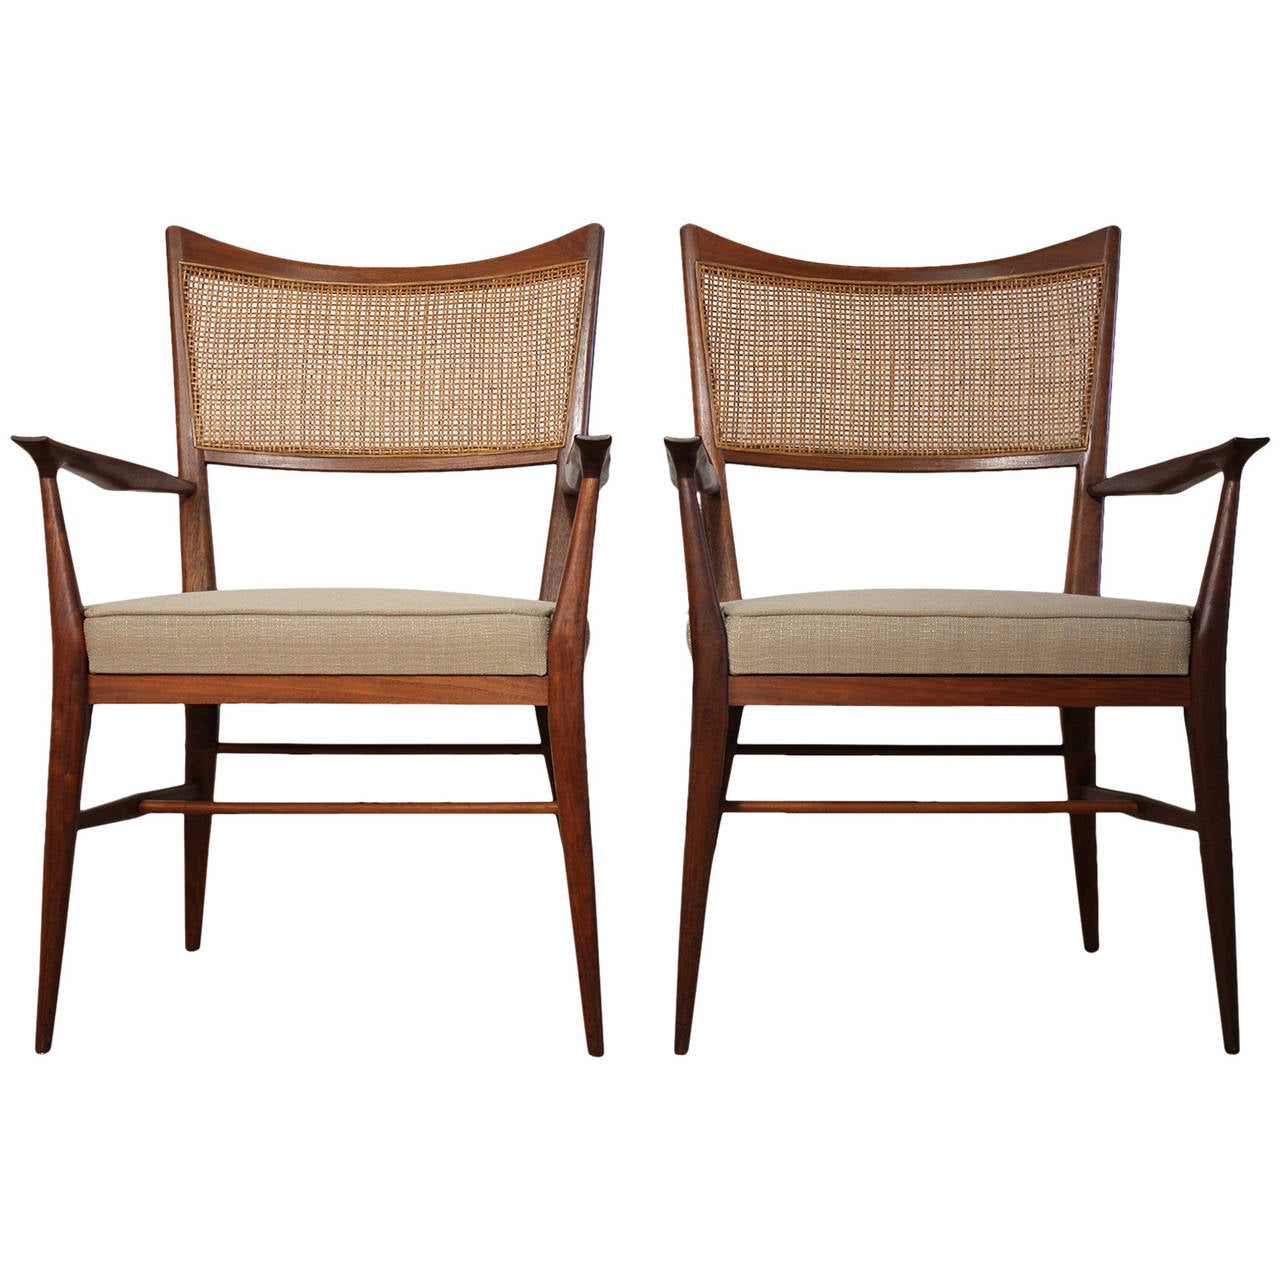 Paul McCobb Occasional Lounge Chairs